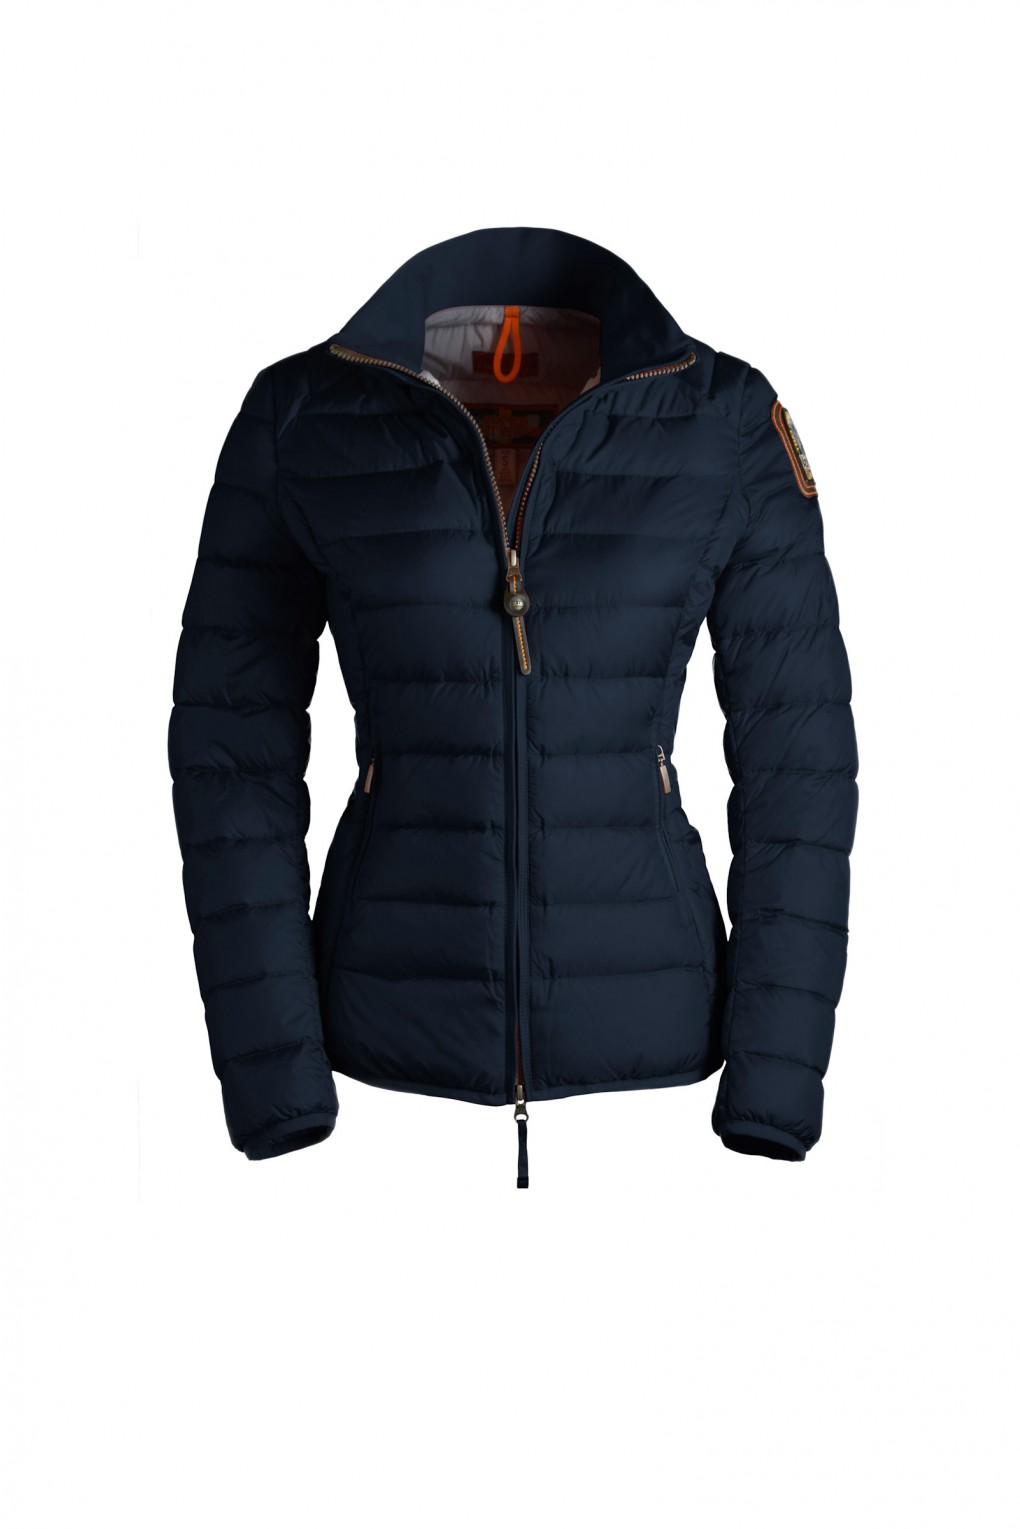 parajumpers GEENA 6 woman outerwear Marine